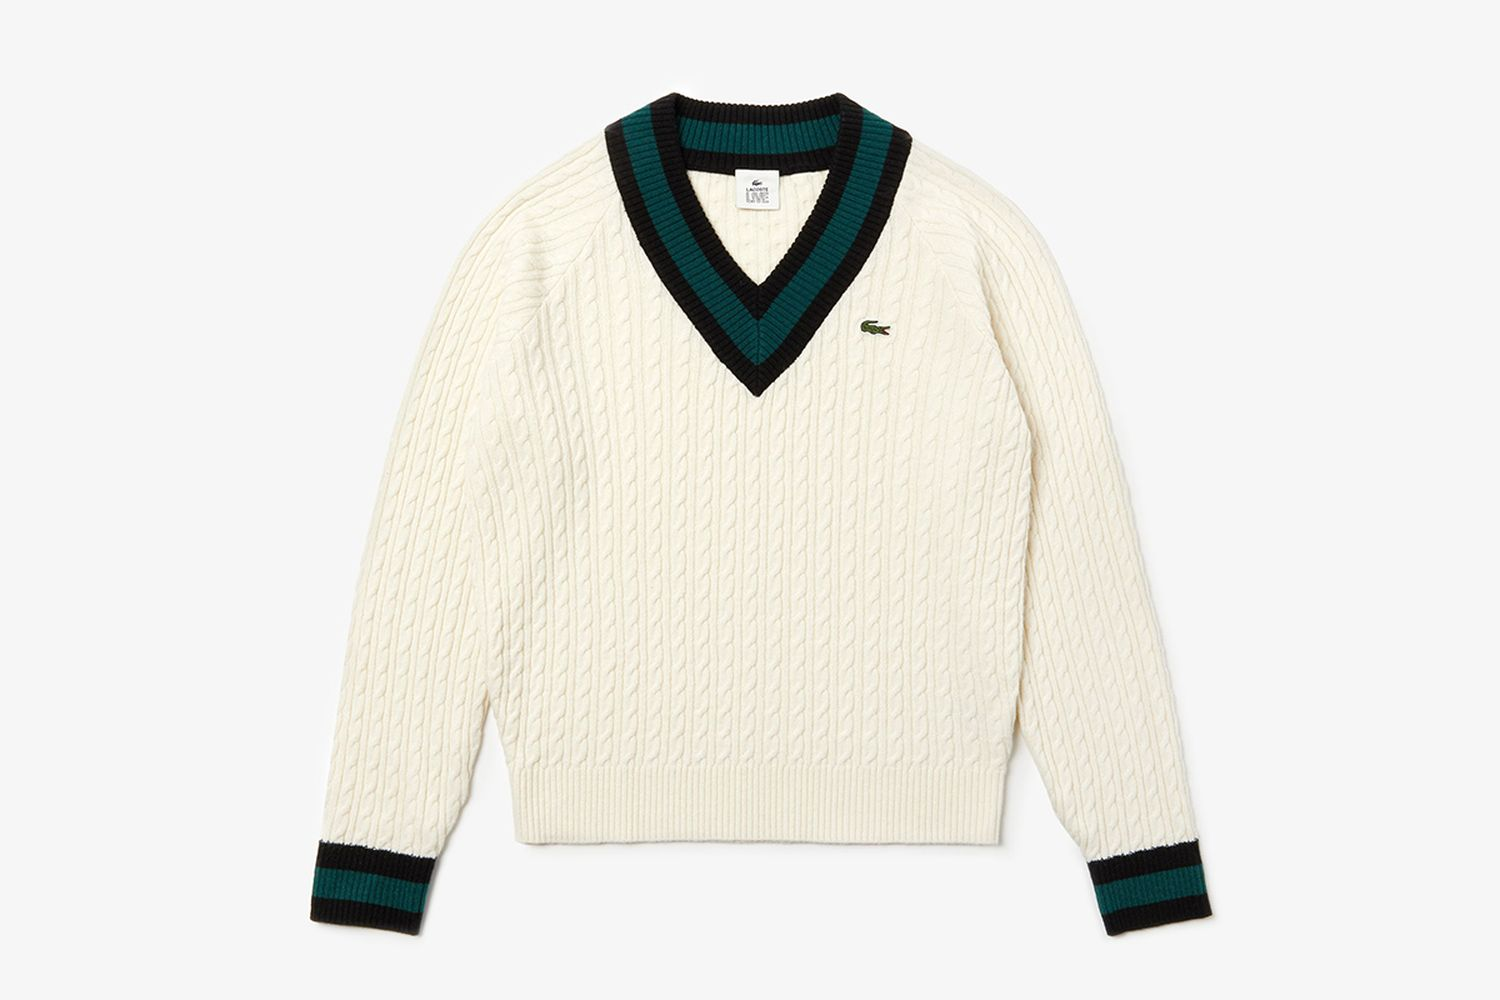 LIVE Cable Knit Sweater